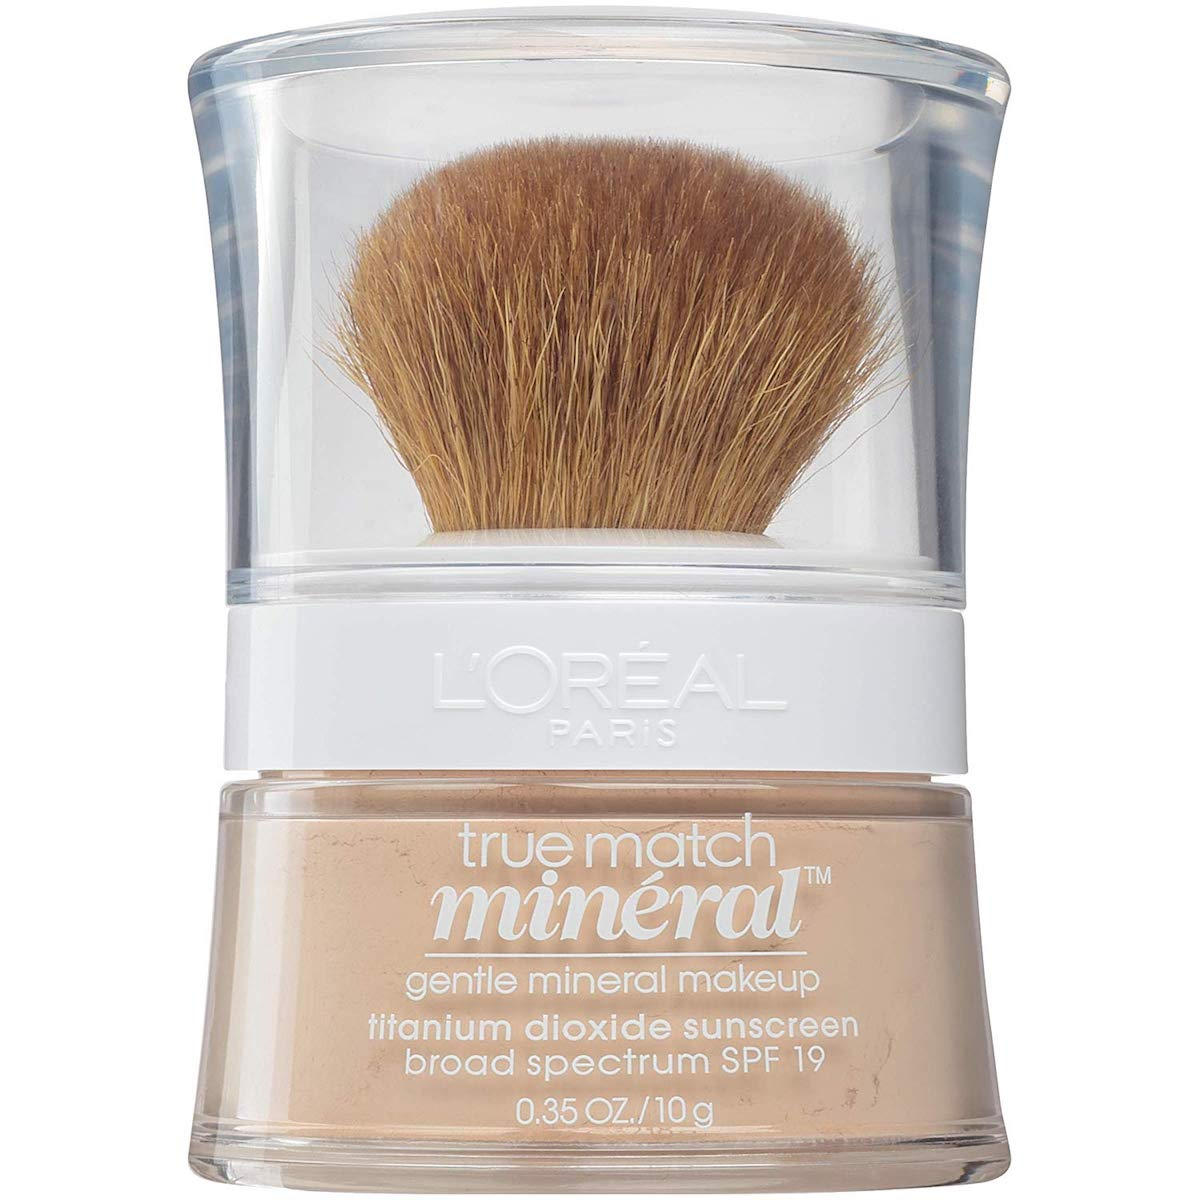 Loreal true match mineral foundation makeup with brush